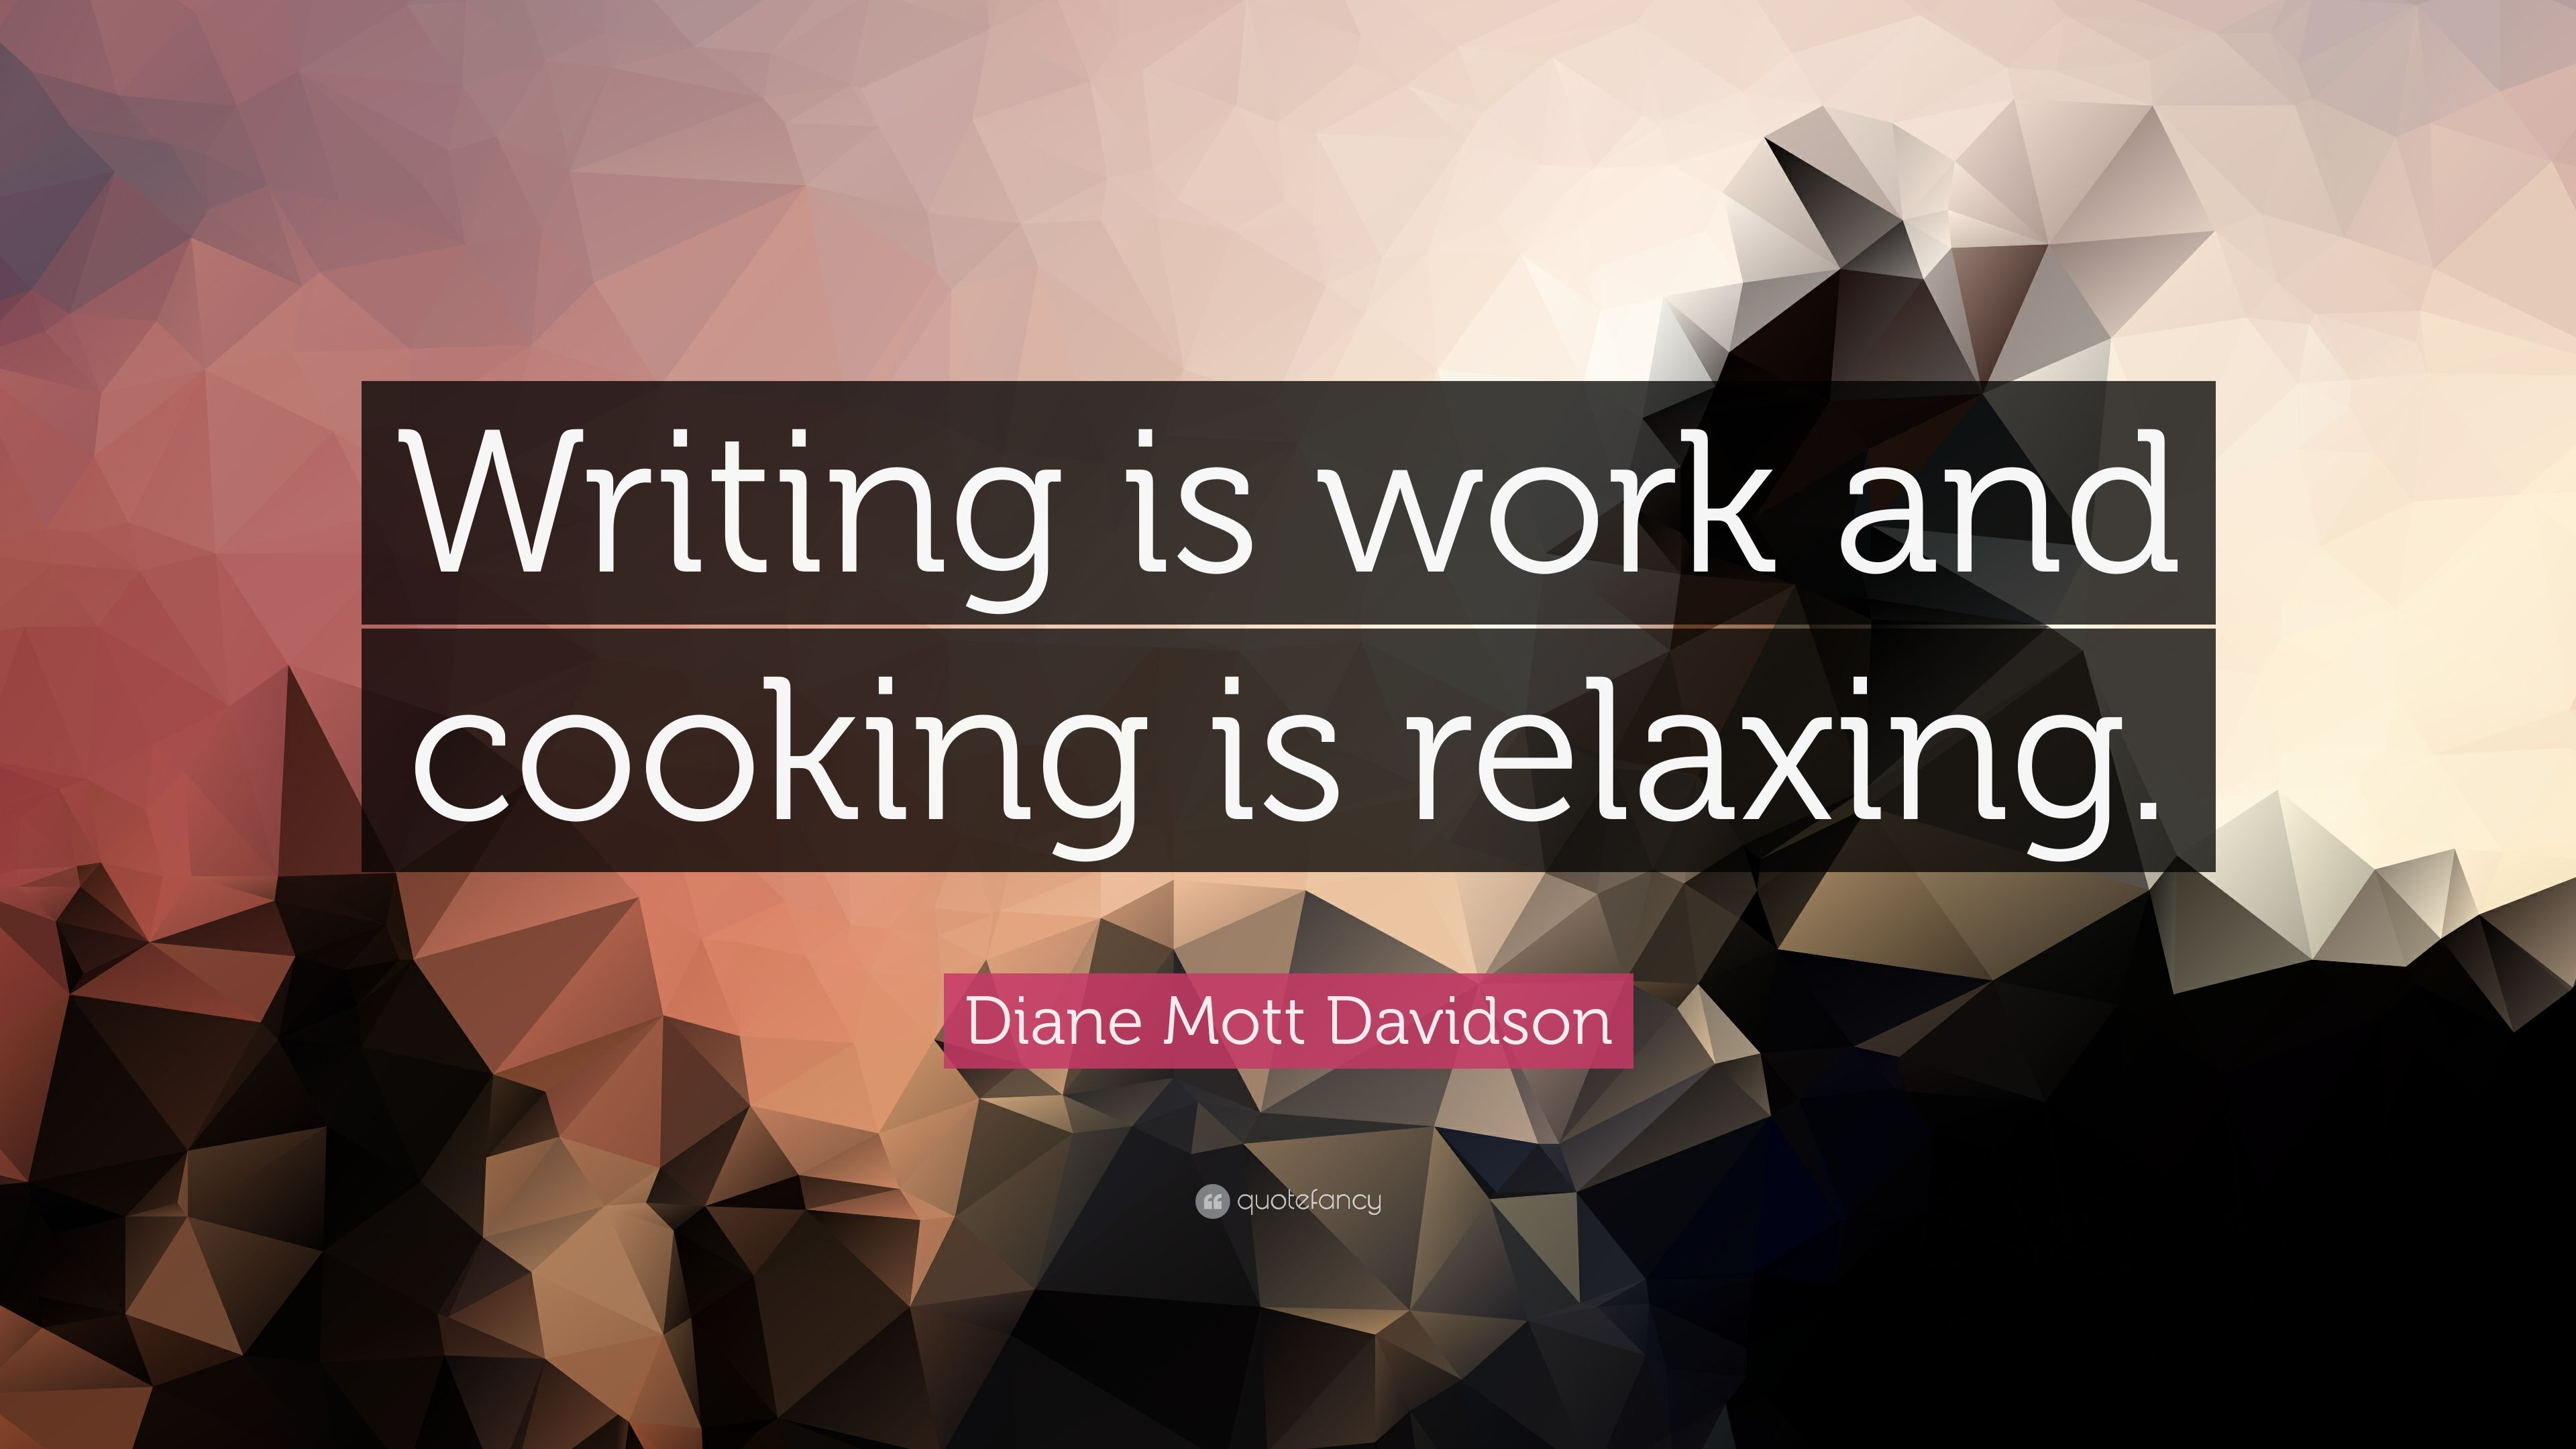 Diane Mott Davidson E Writing Is Work And Cooking Relaxing